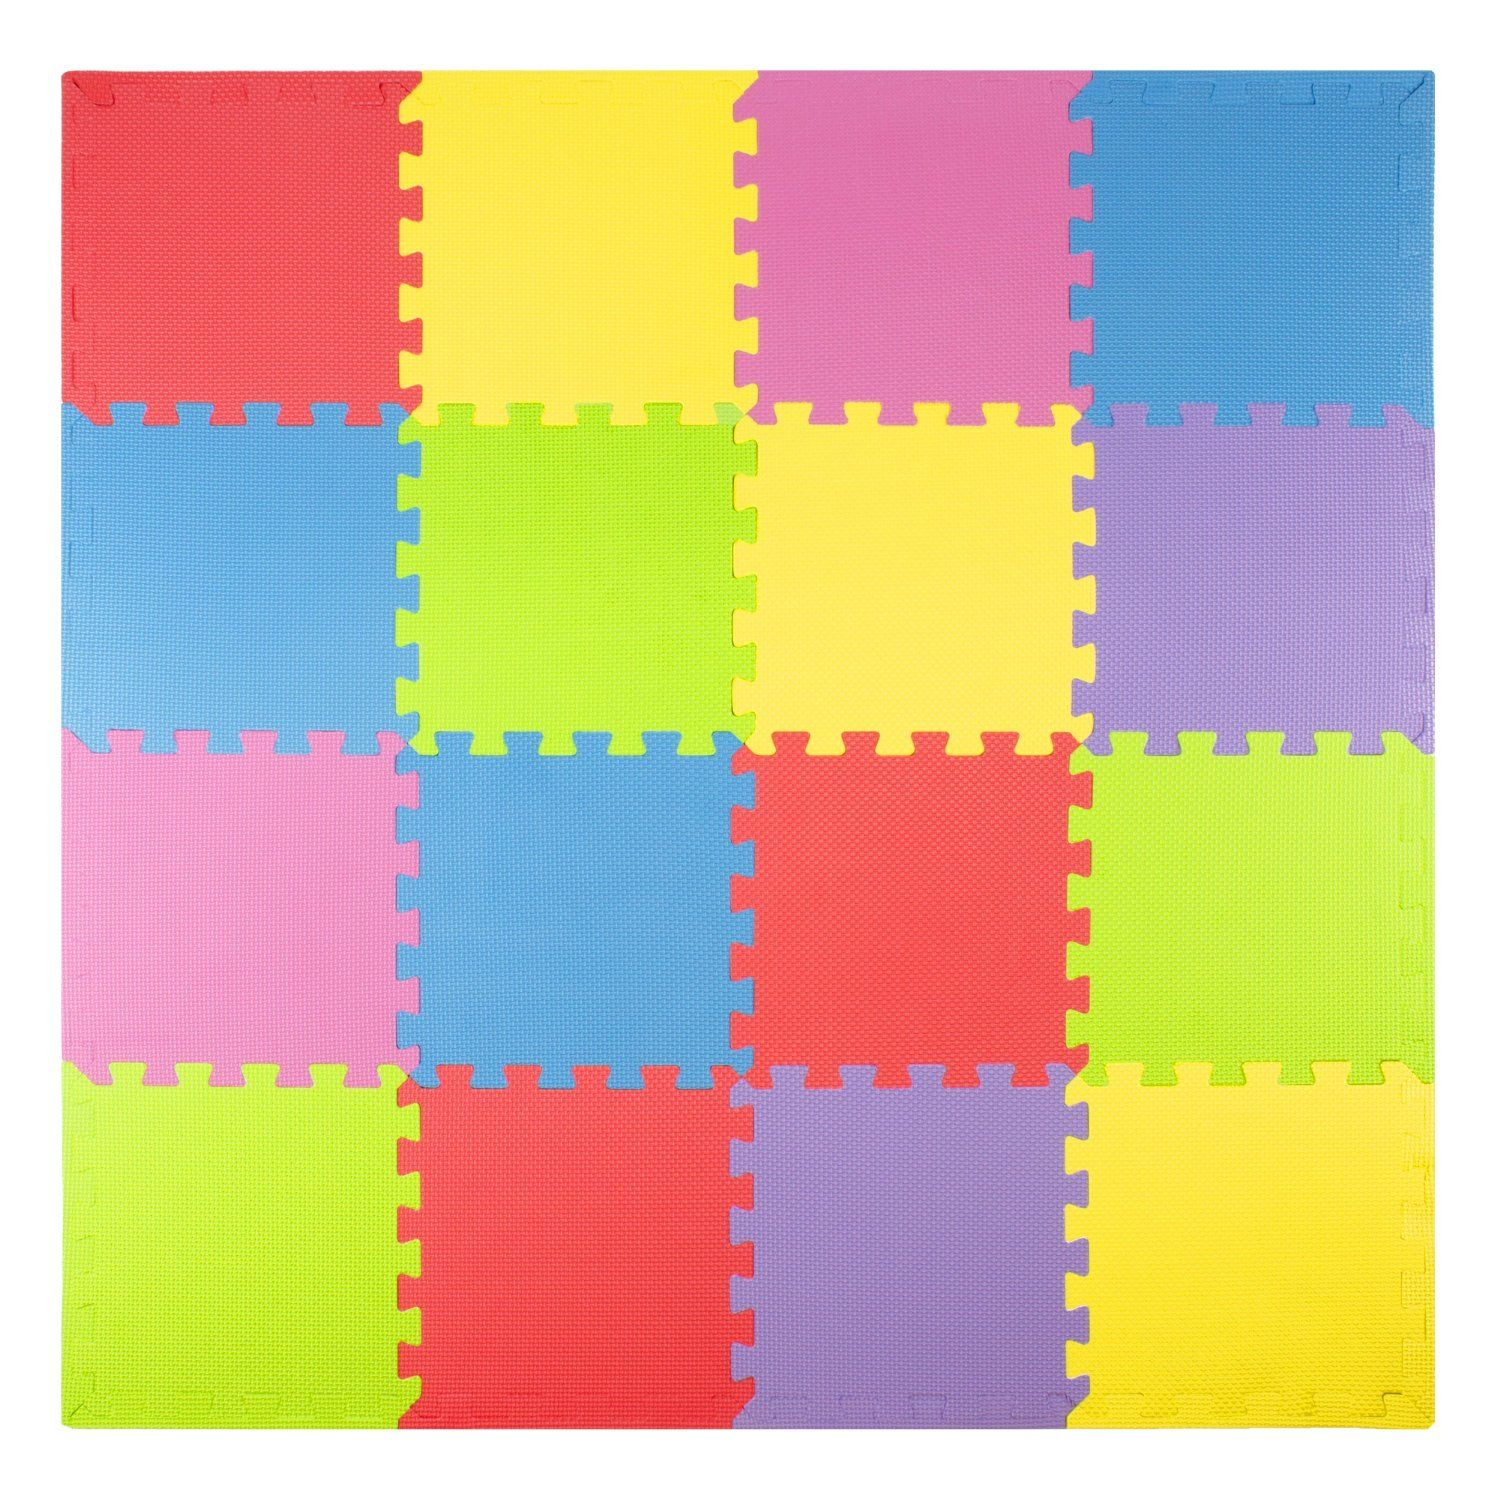 Amazon Com Foam Play Mats 16 Tiles Borders Kids